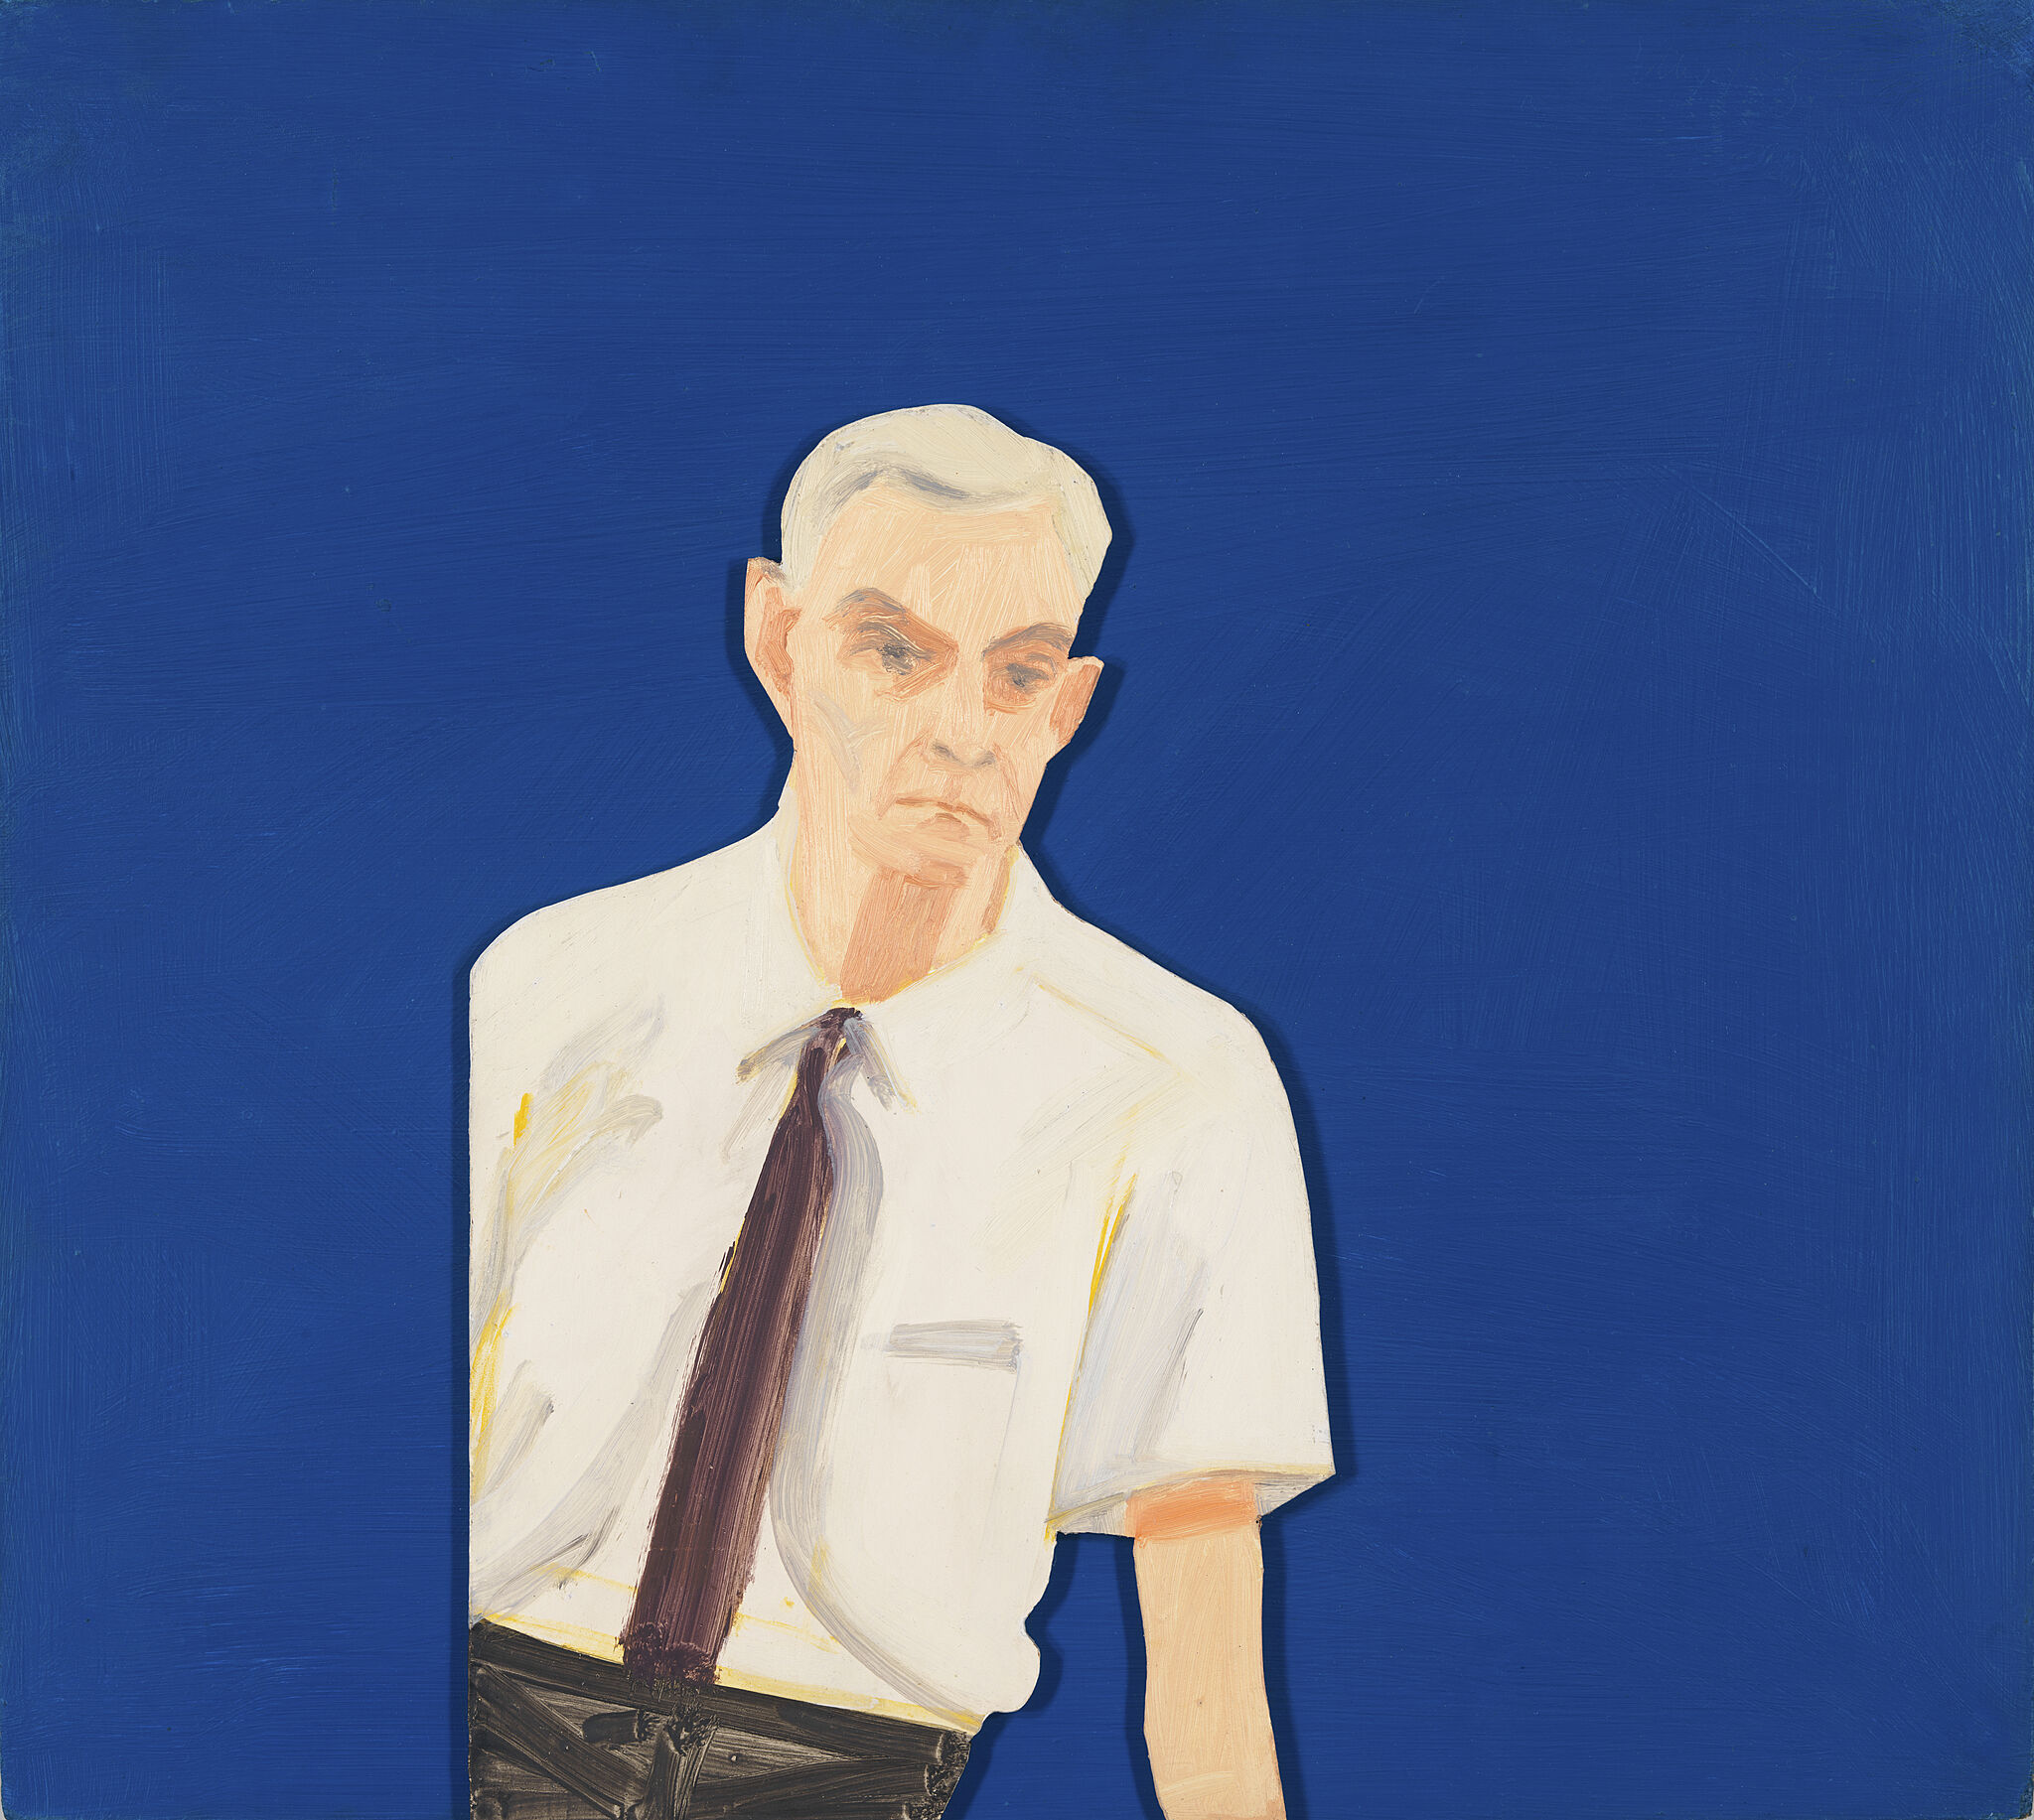 A man in a white shirt on a blue background.